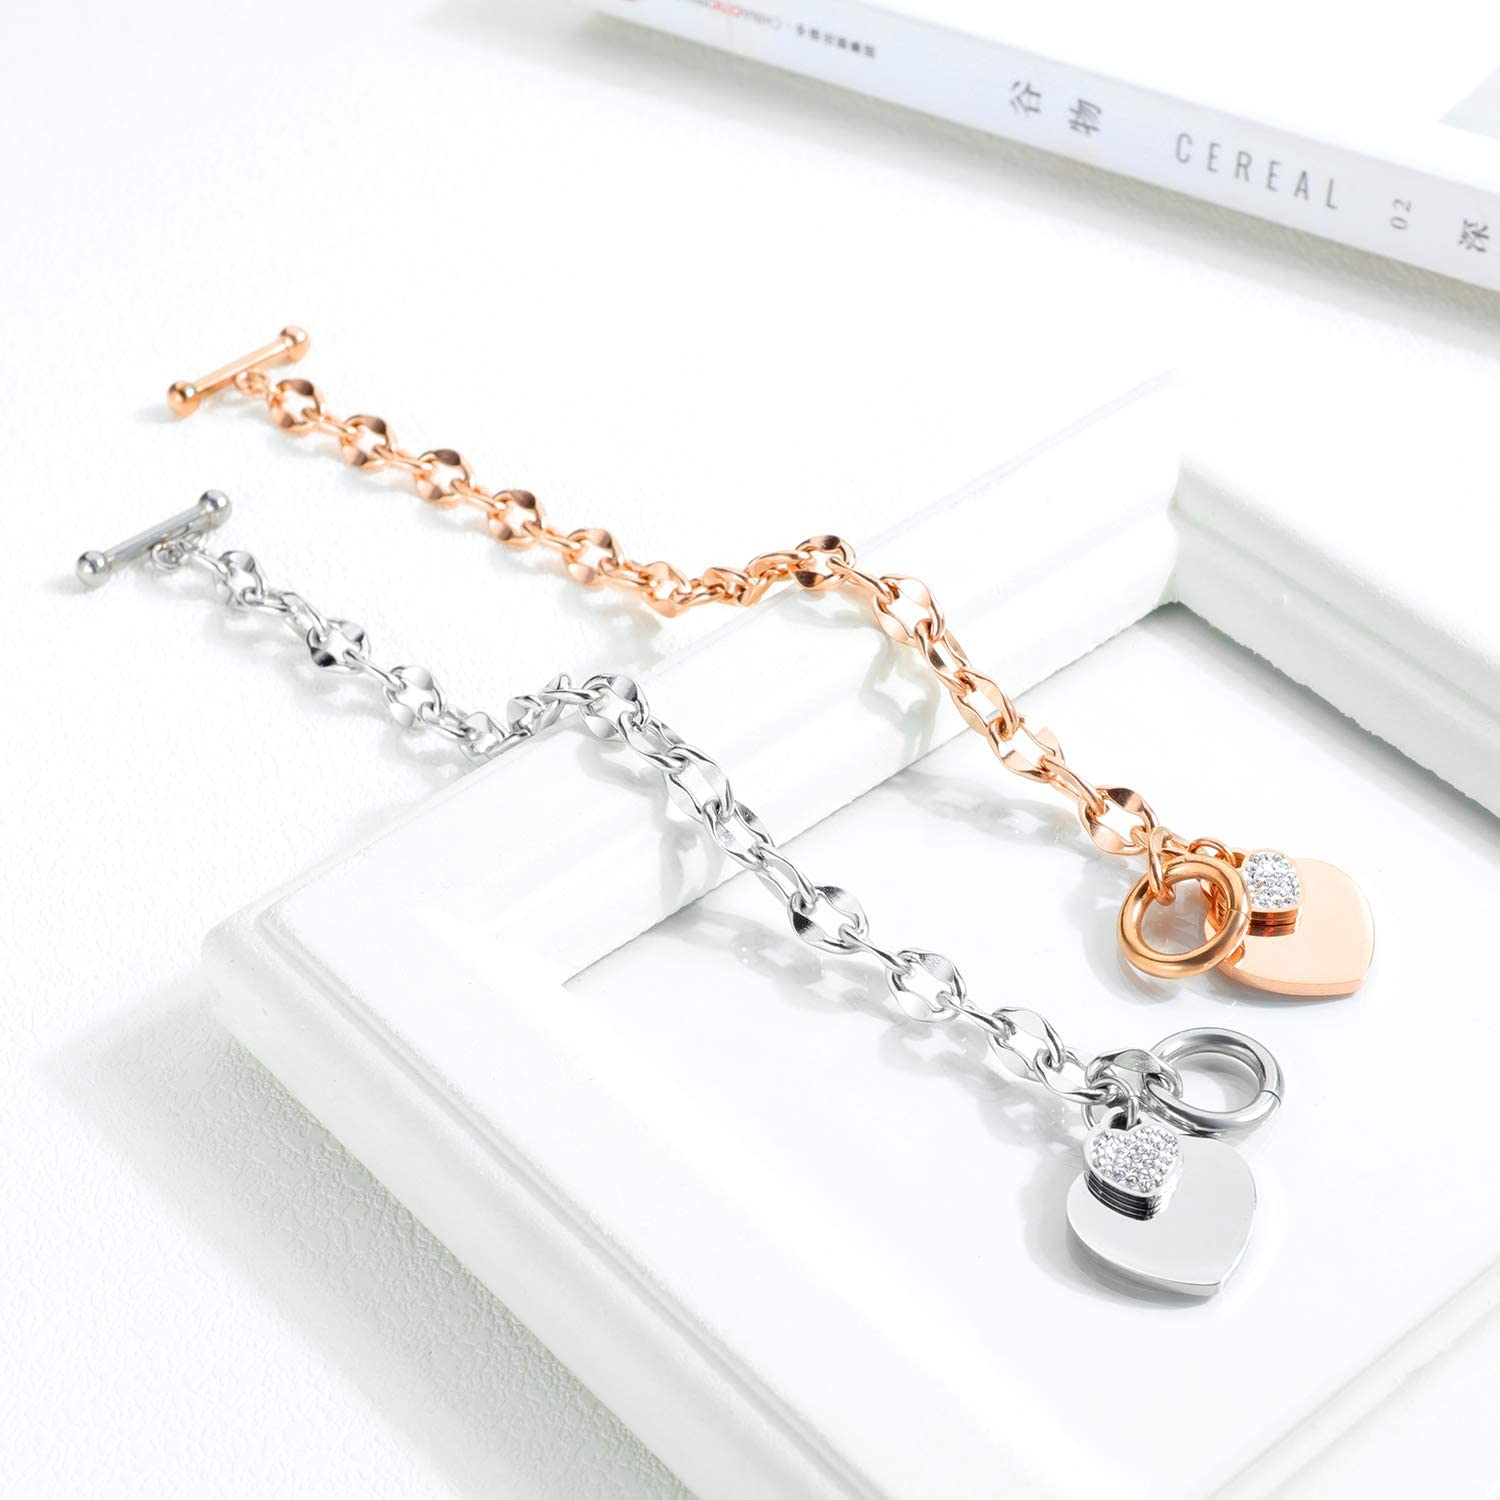 Stainless steel Very trendy teenager ... Neck rasmesh trombone watermark toggle heart clasp Ideal Gift woman